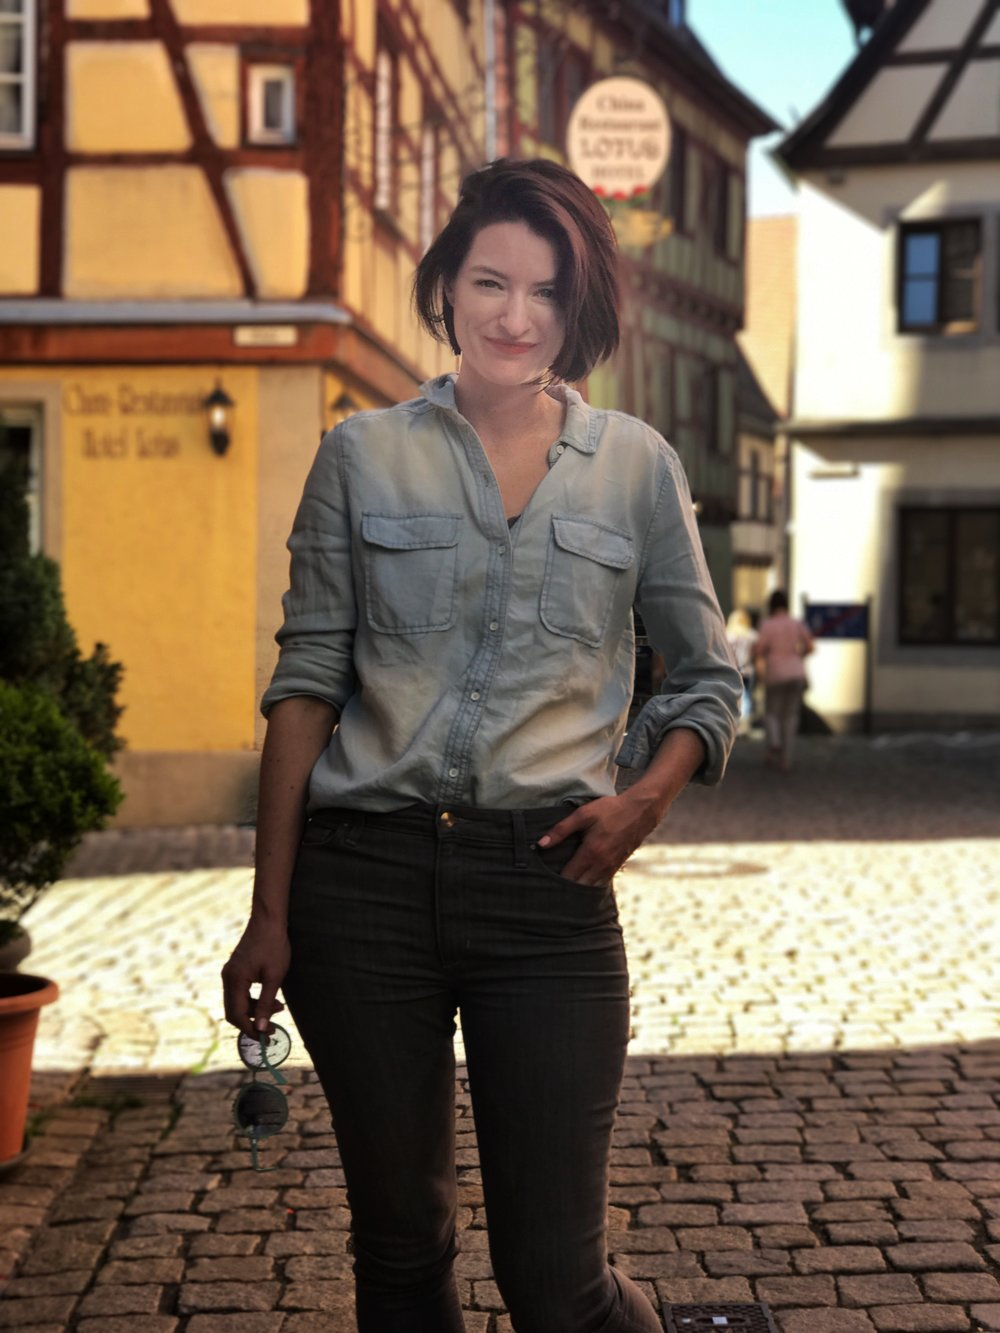 Strolling (very quickly) through the streets of a Bavarian village